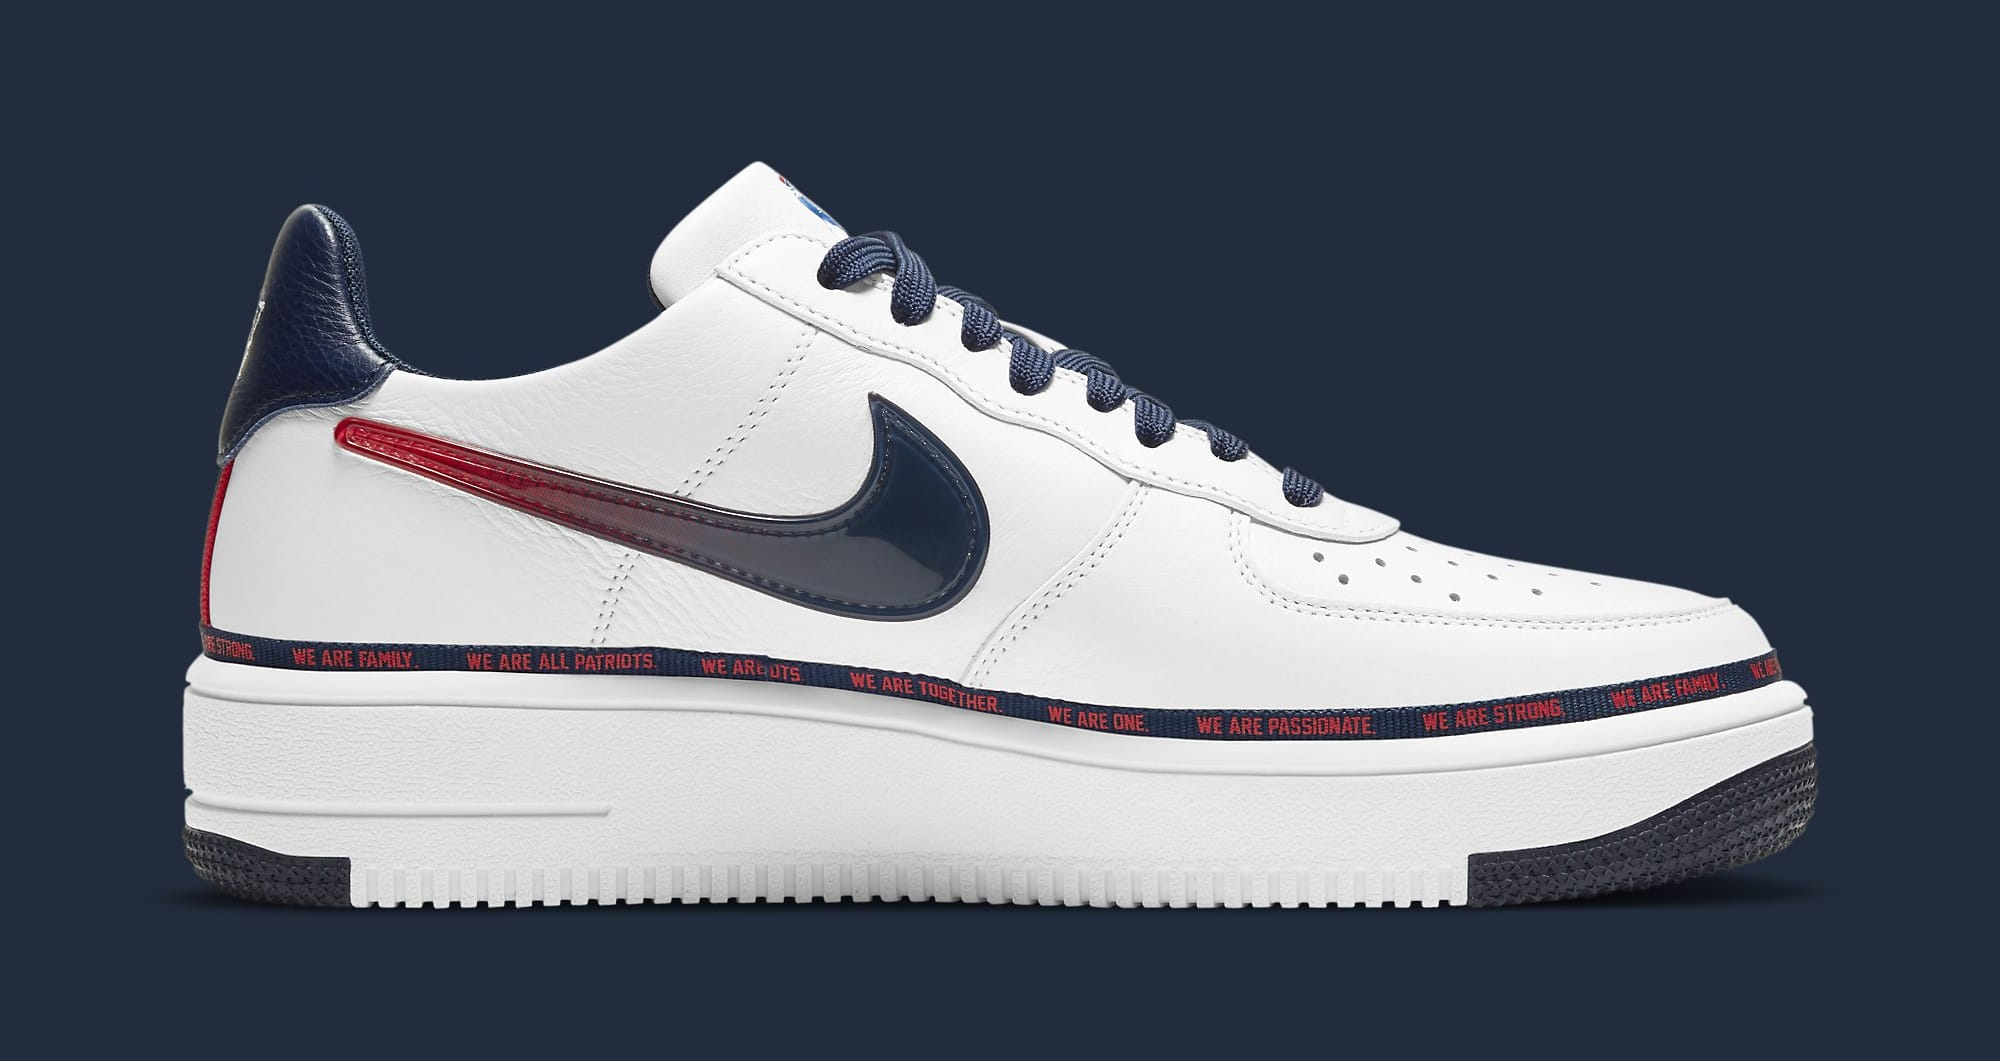 Nike Air Force 1 Ultraforce 'New England Patriots' DB6316-100 Medial